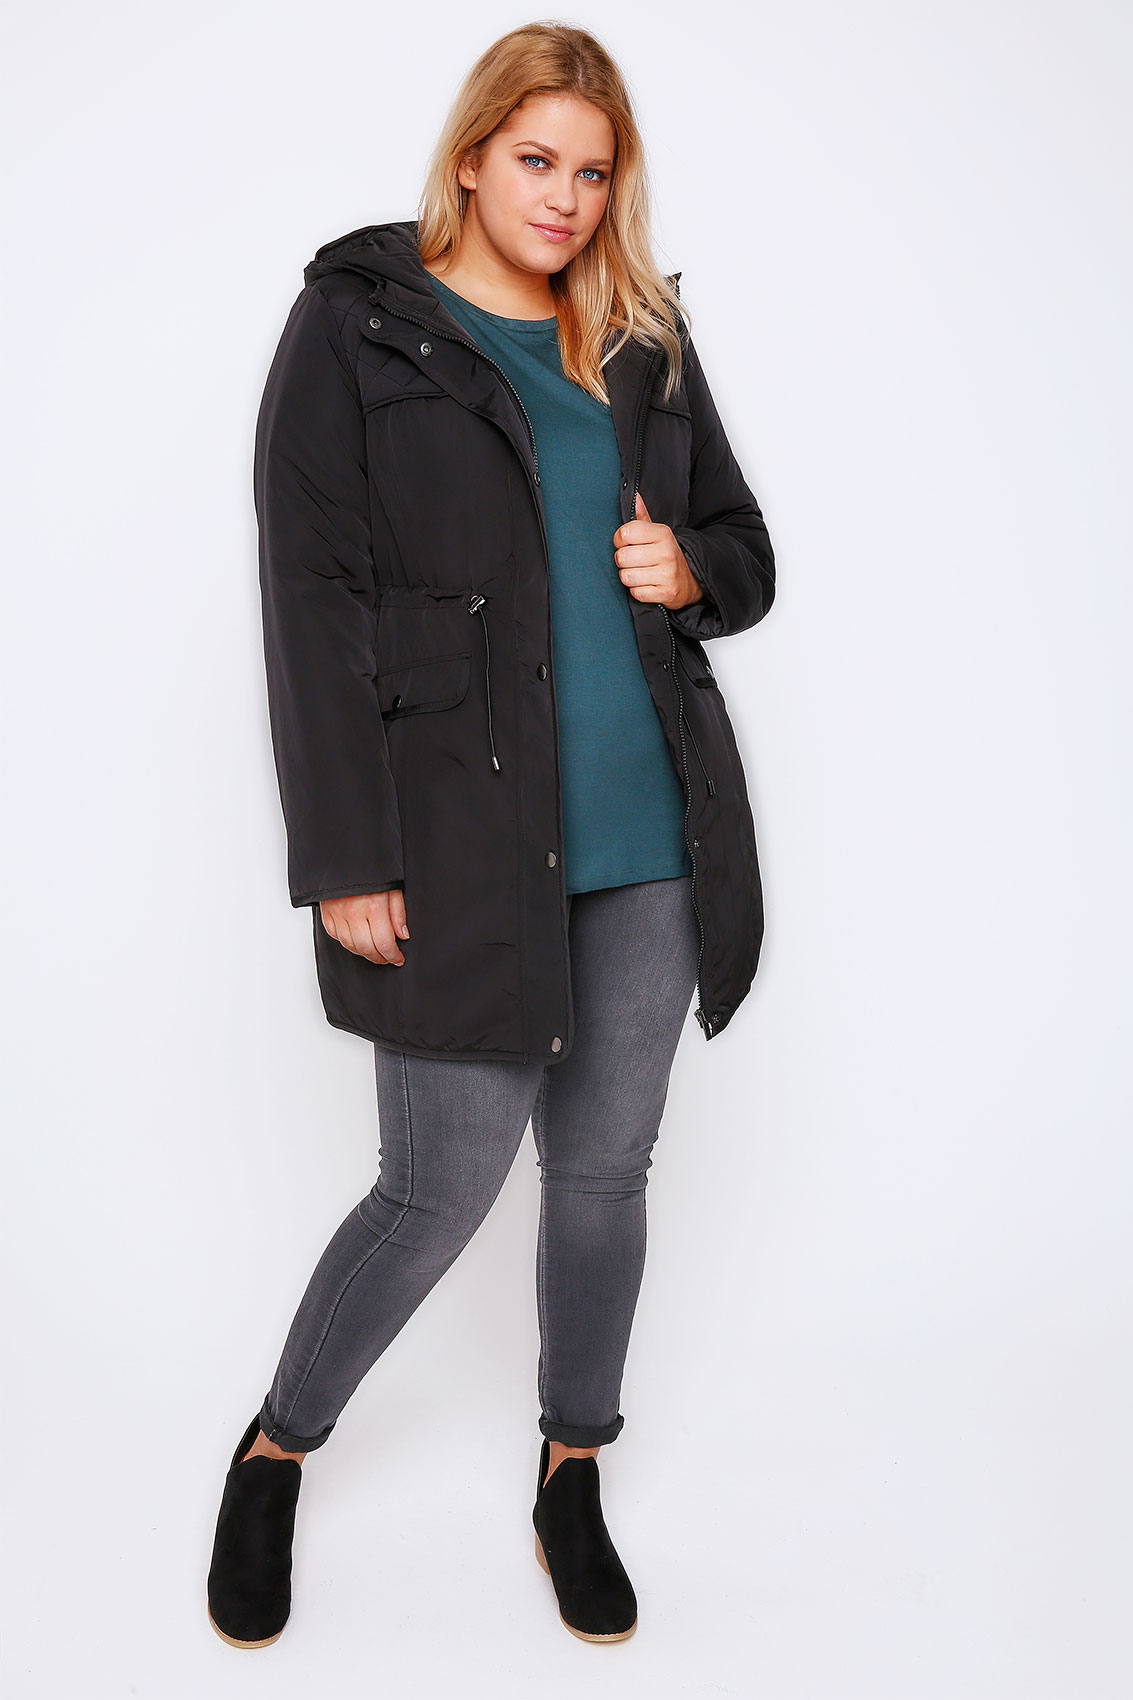 Black Padded Parka Coat With Quilted Shoulders & Hood Plus Size 16 ...